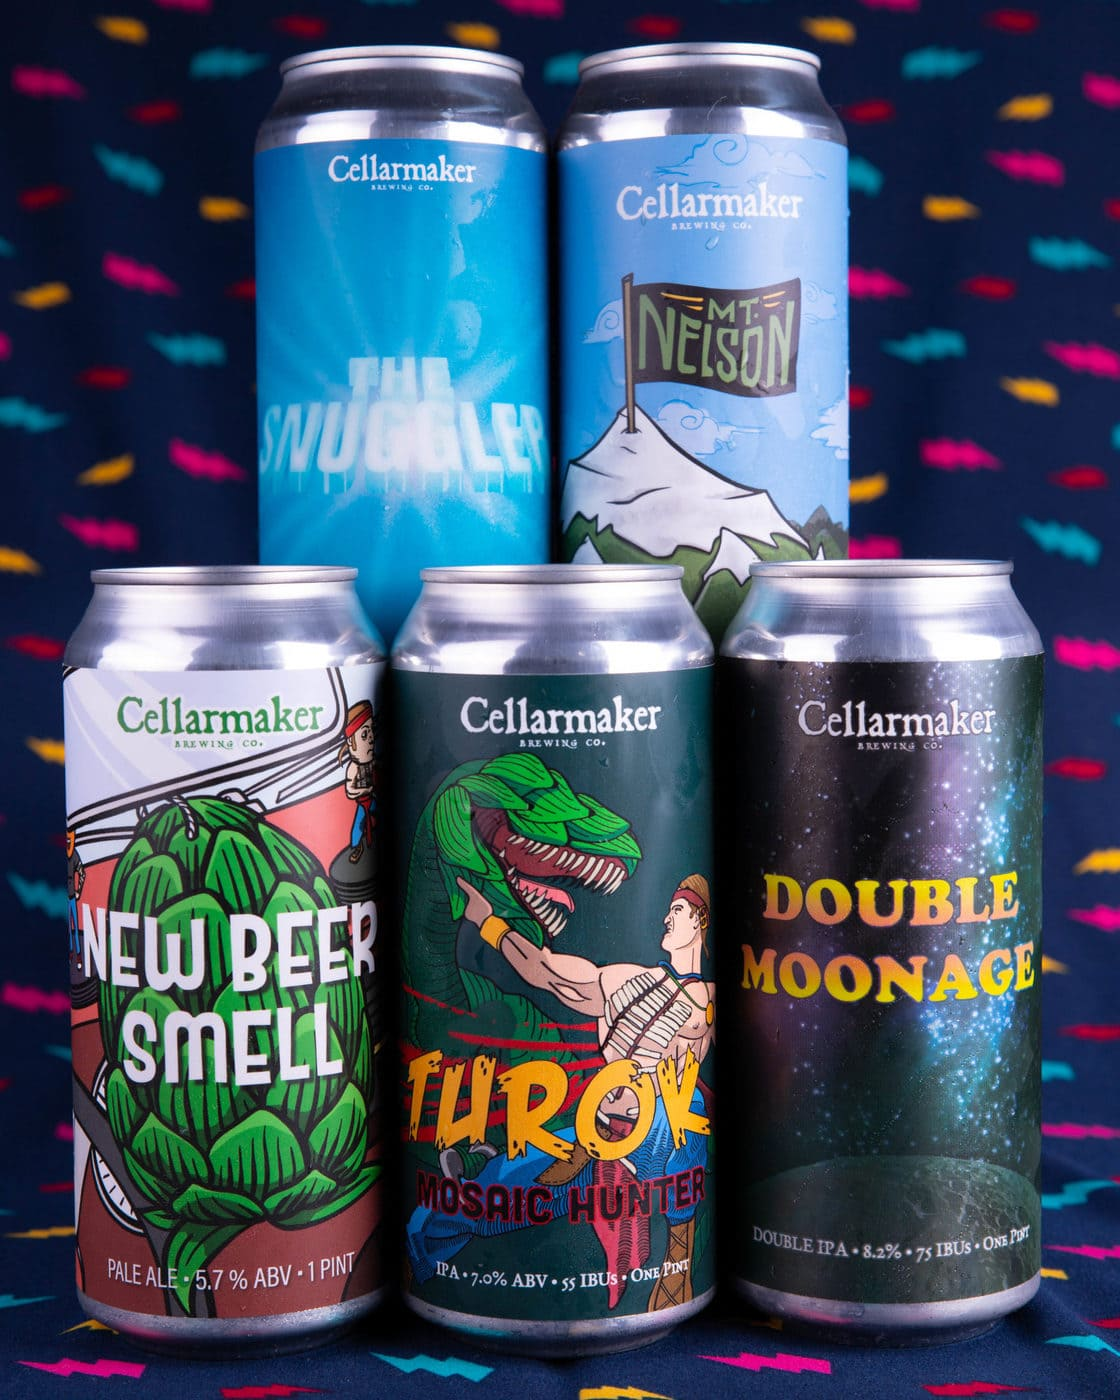 """""""DOUBLE MOONAGE"""" DIPA, """"NEW BEER SMELL"""" PALE, """"TUROK: MOSAIC HUNTER"""" IPA, """"DDH MT NELSON"""" PALE, & """"THE SNUGGLER"""" IPA ~ SOLD OUT"""